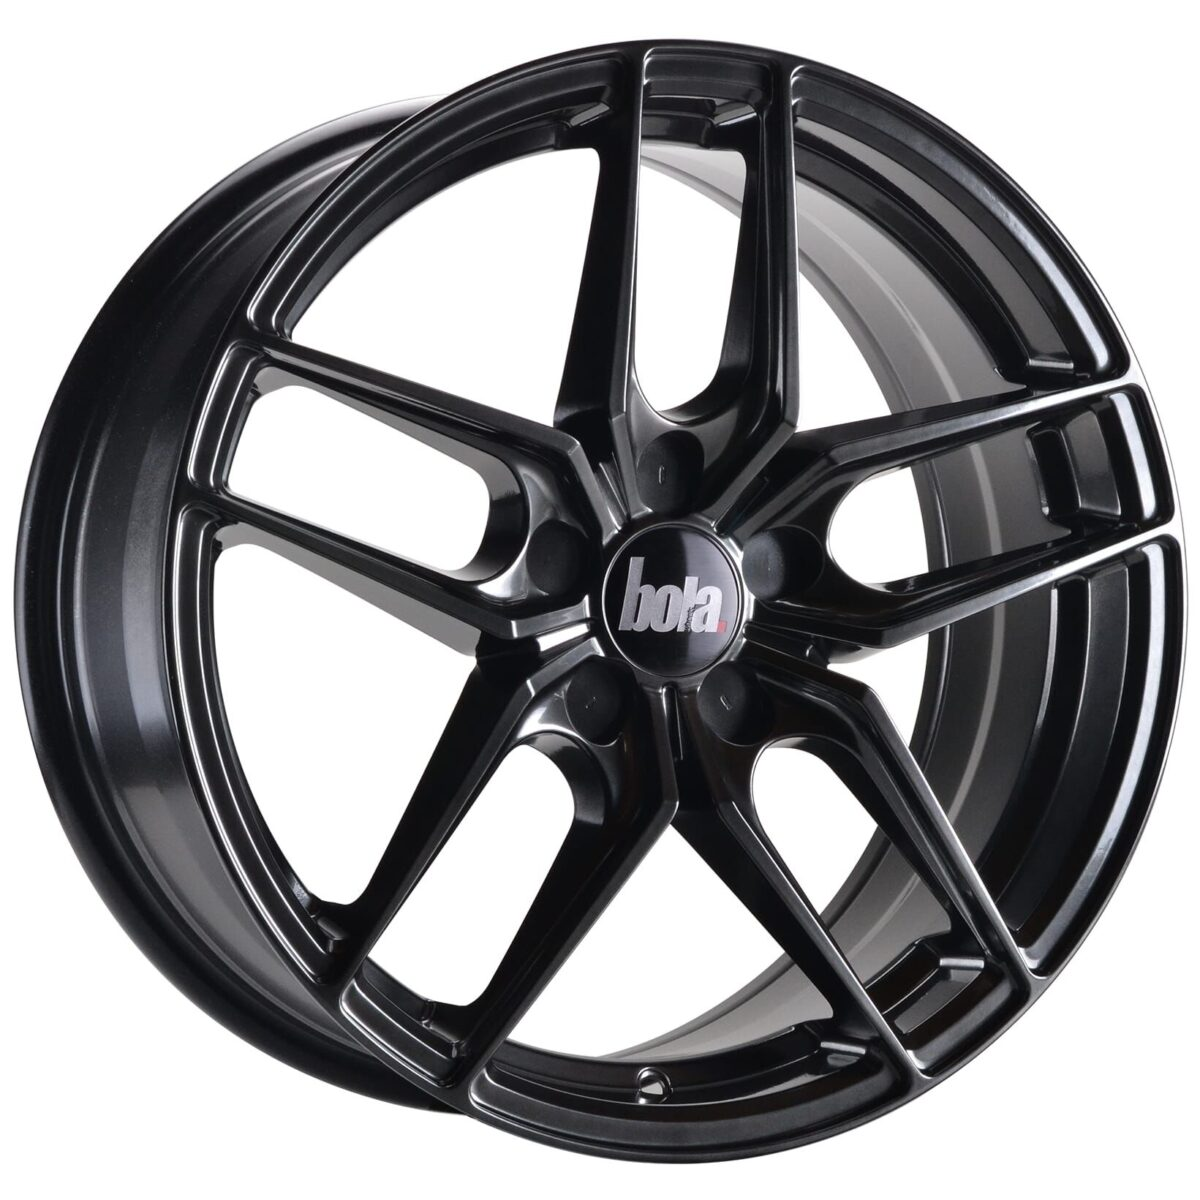 "18"" BOLA B11 Wheels - Hyper Black - All BMW Models"